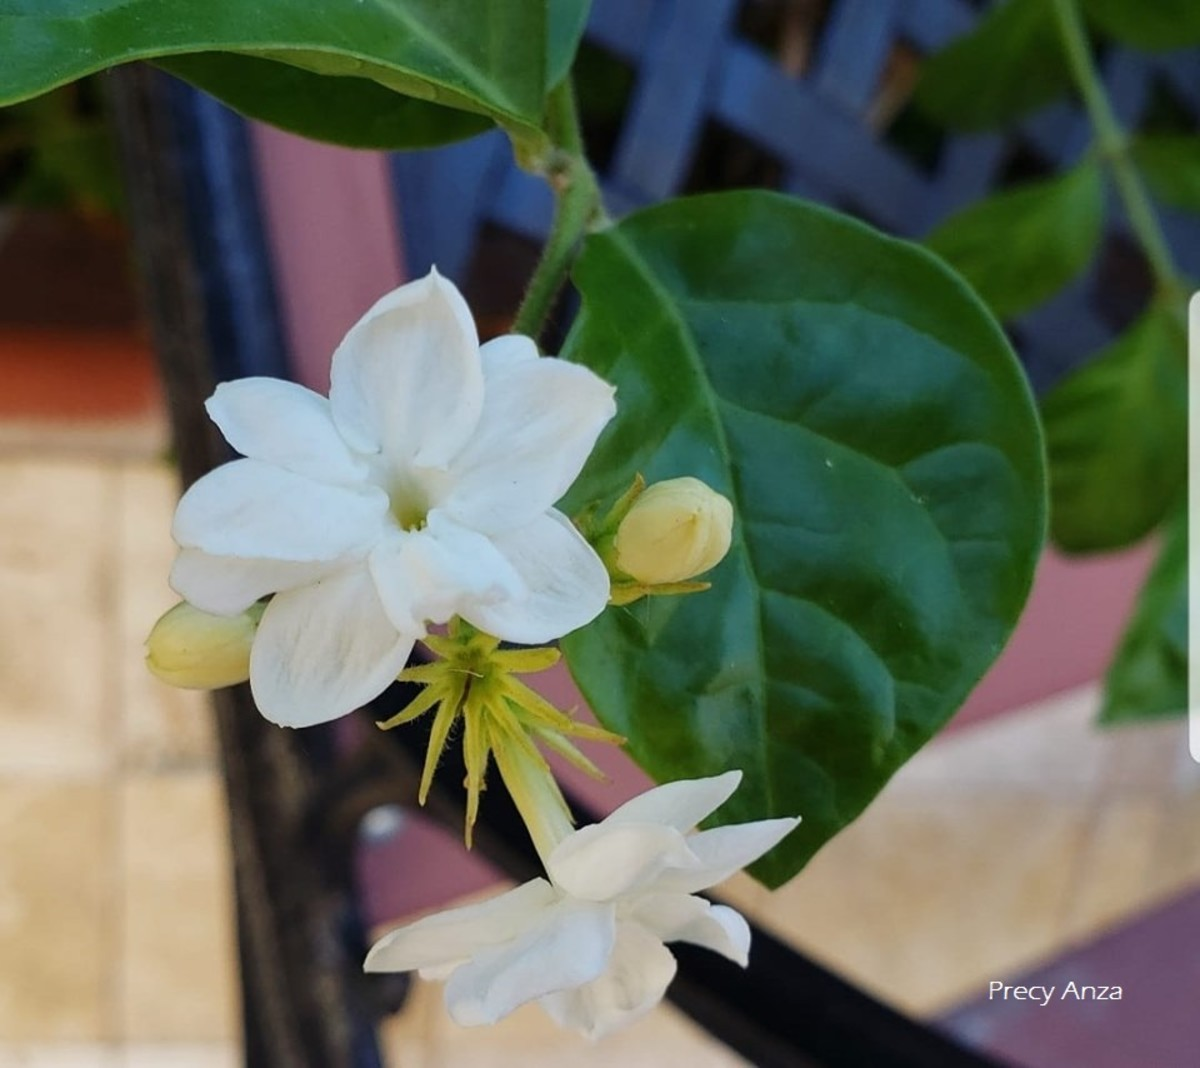 Jasminum Sambac - Symbolism, Photos and the Legend of the National Flower of the Philippines